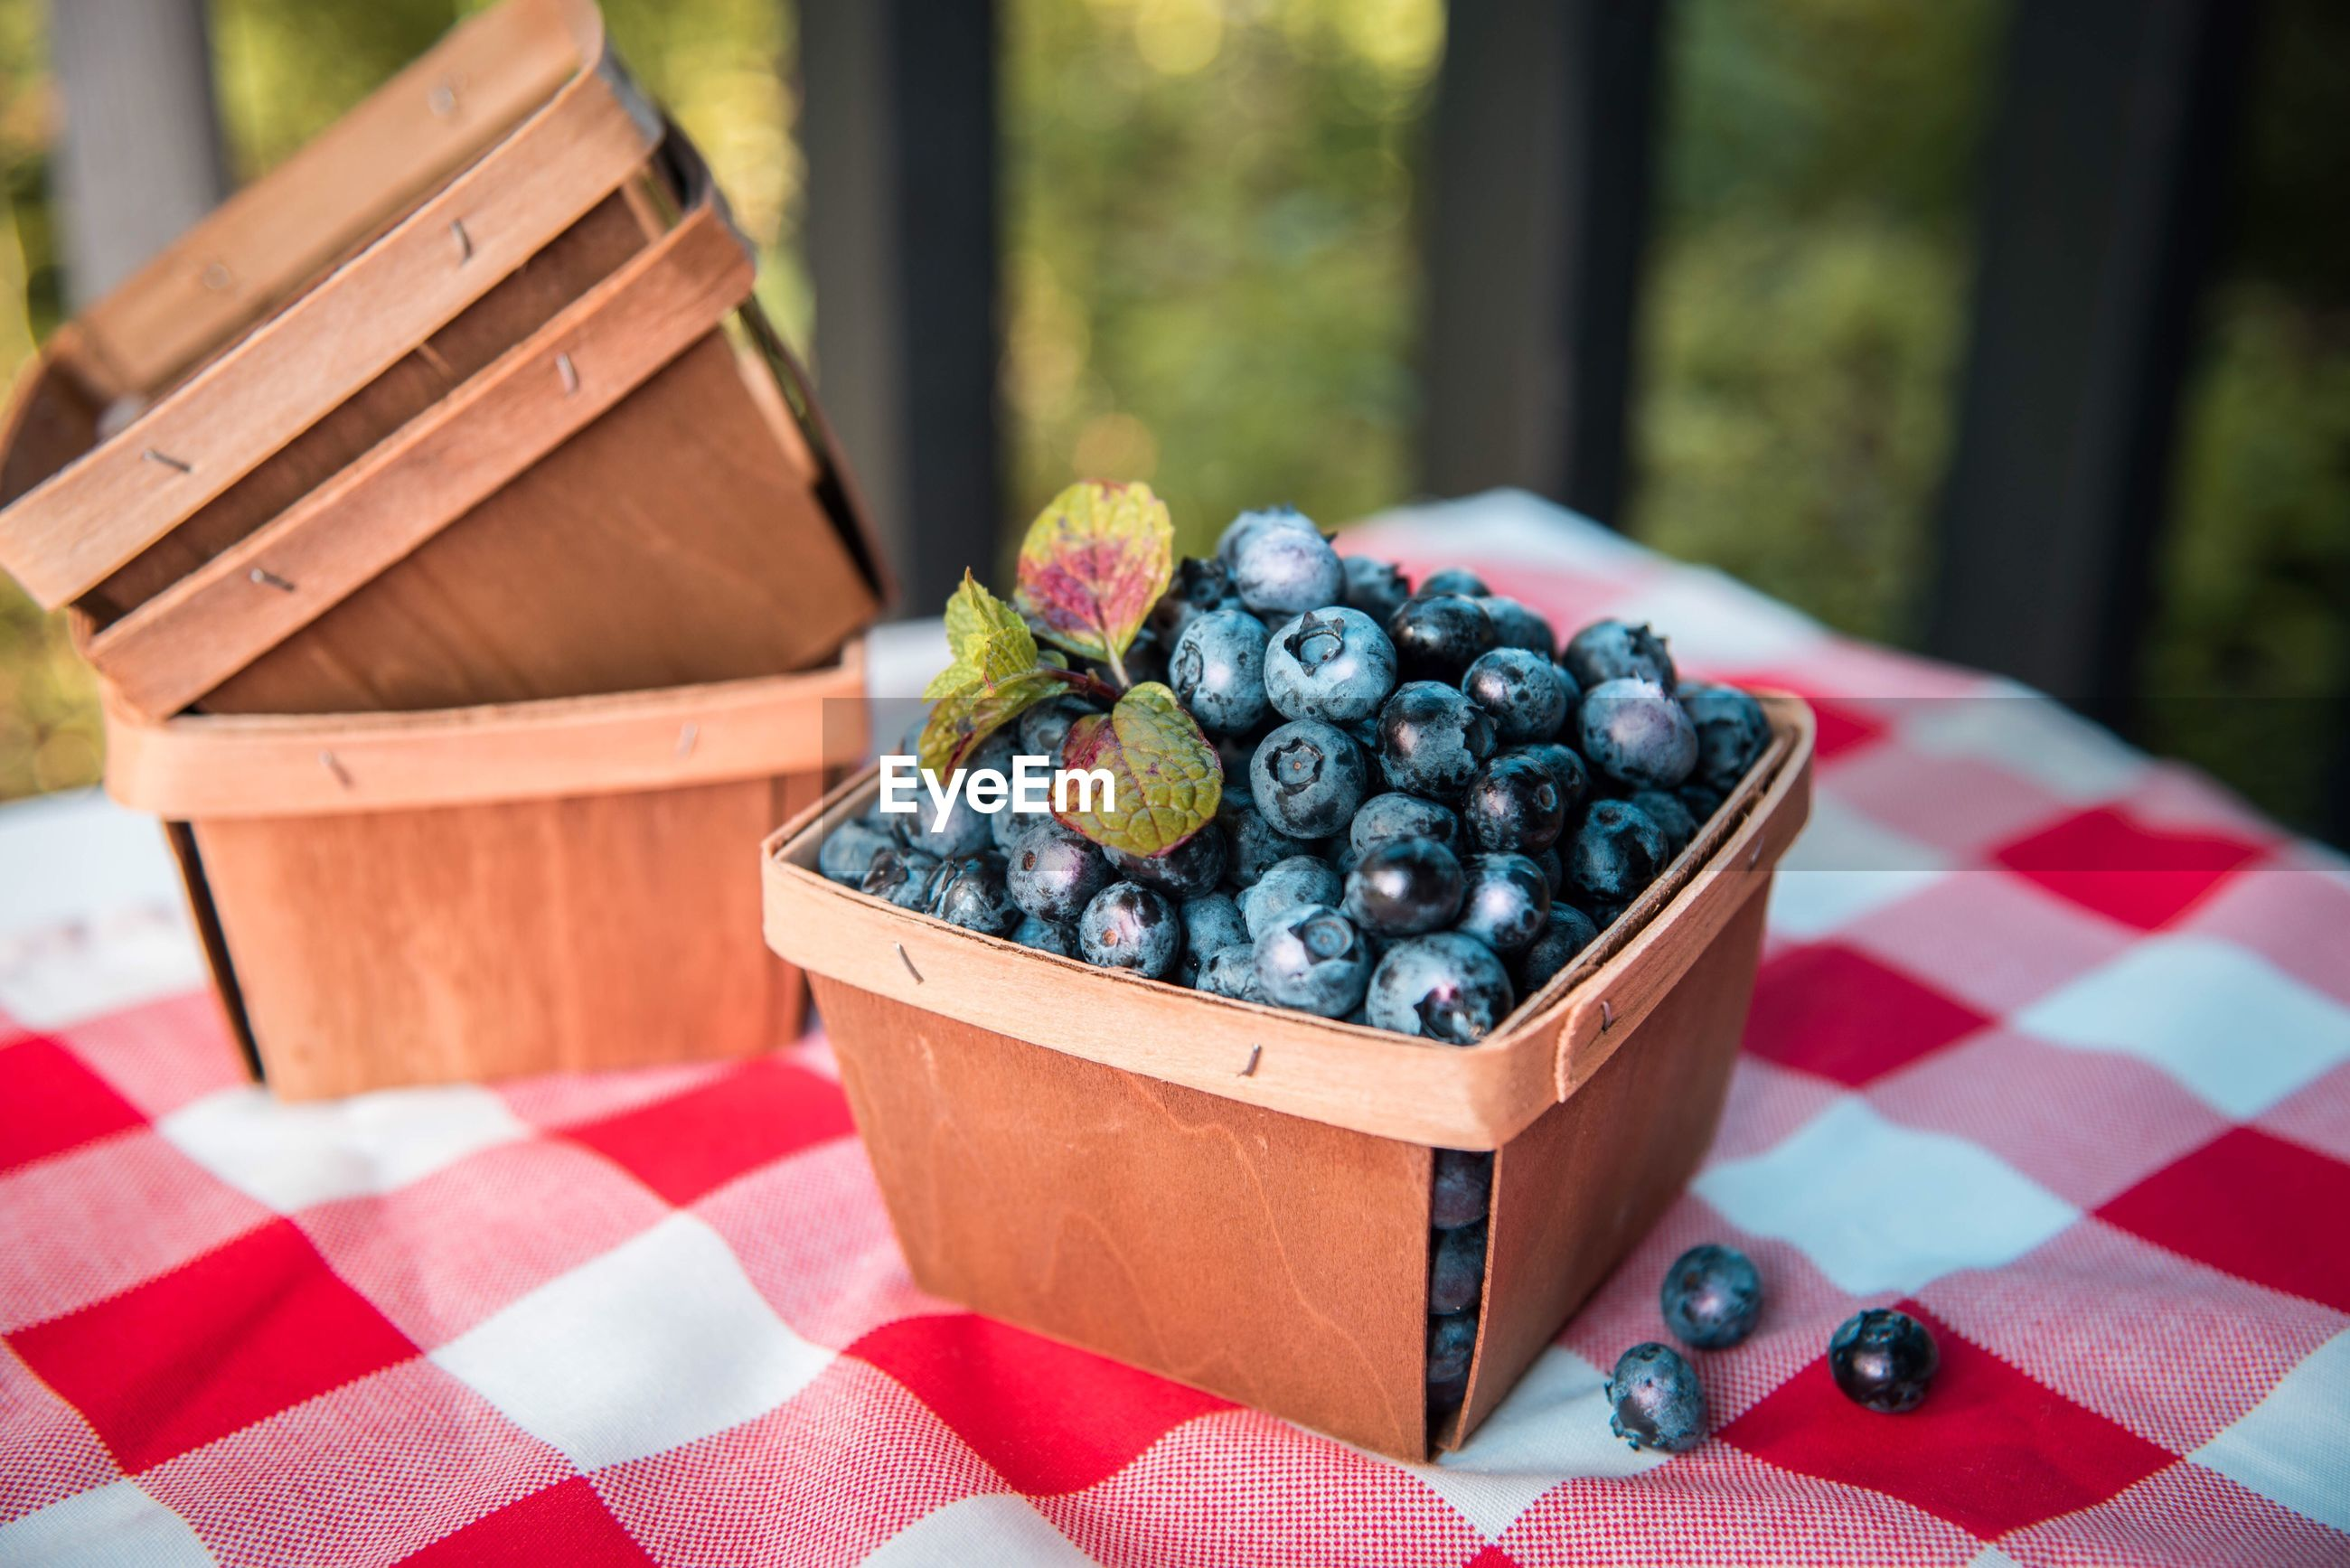 Close-up of blueberries in container on table